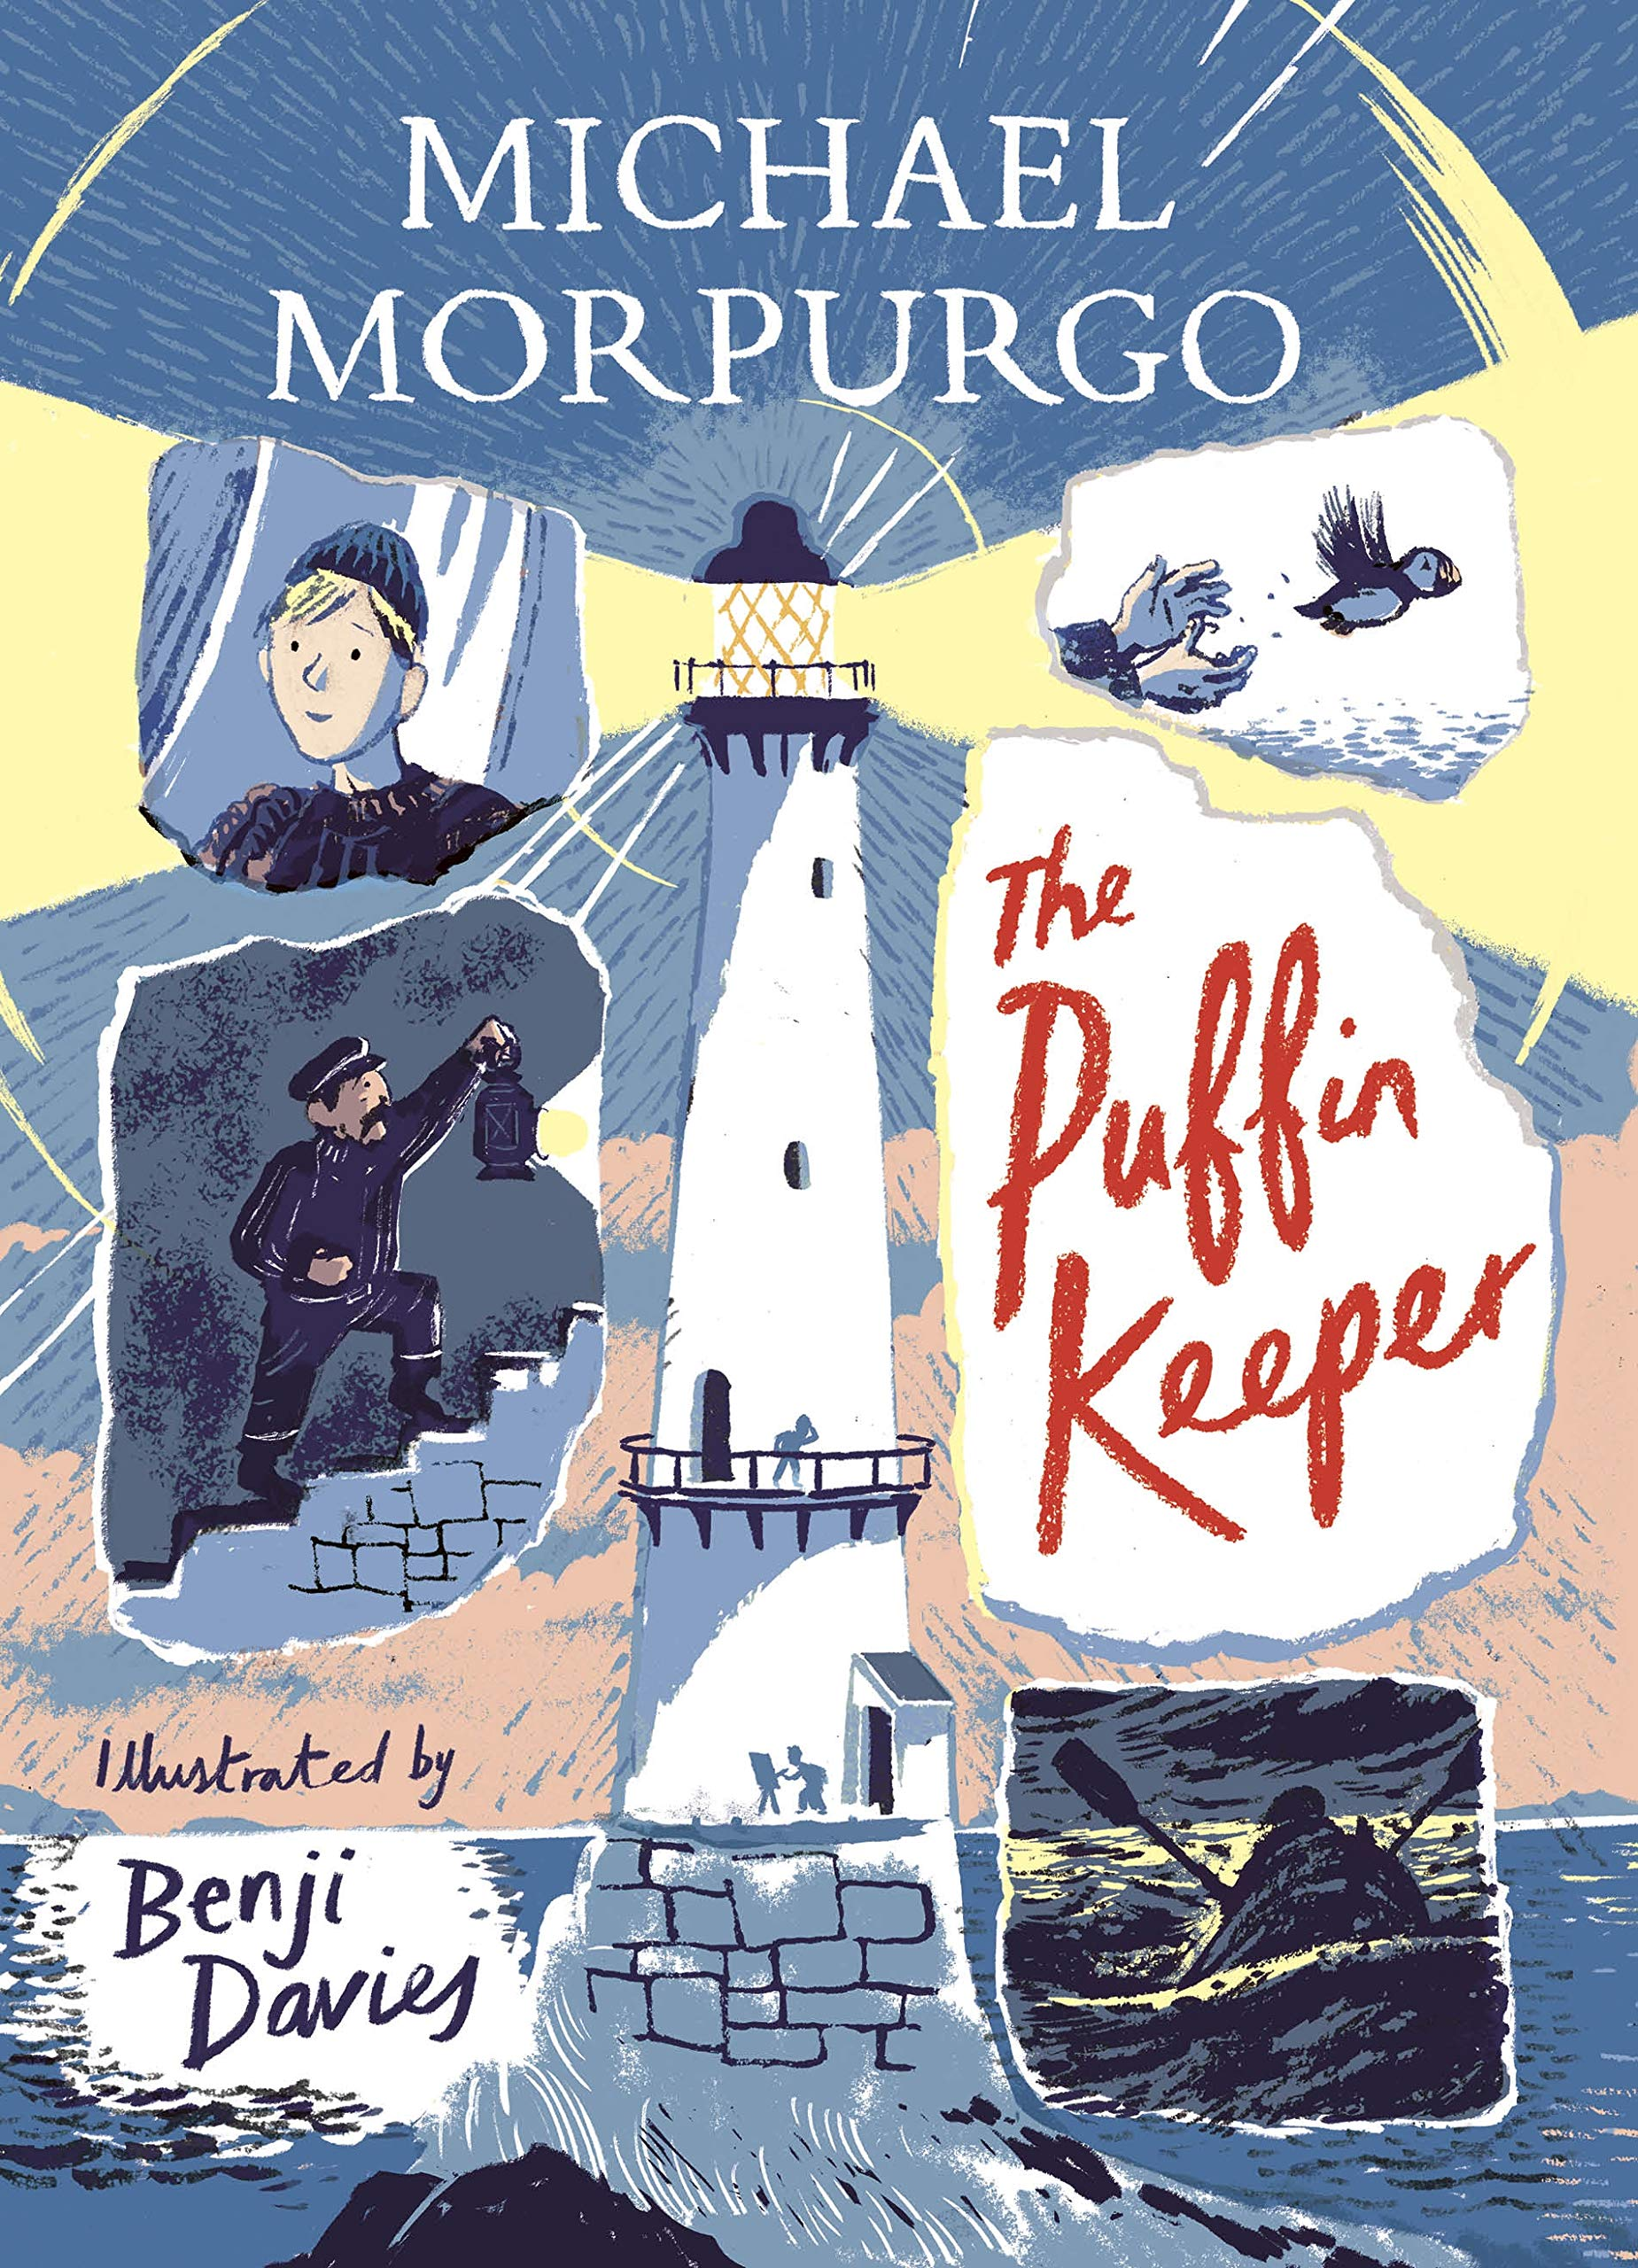 Above: Benji Davies (part of The Bright Agency stable) created the artwork for the book cover of Michael Morpurgo's book, The Puffin Keeper.